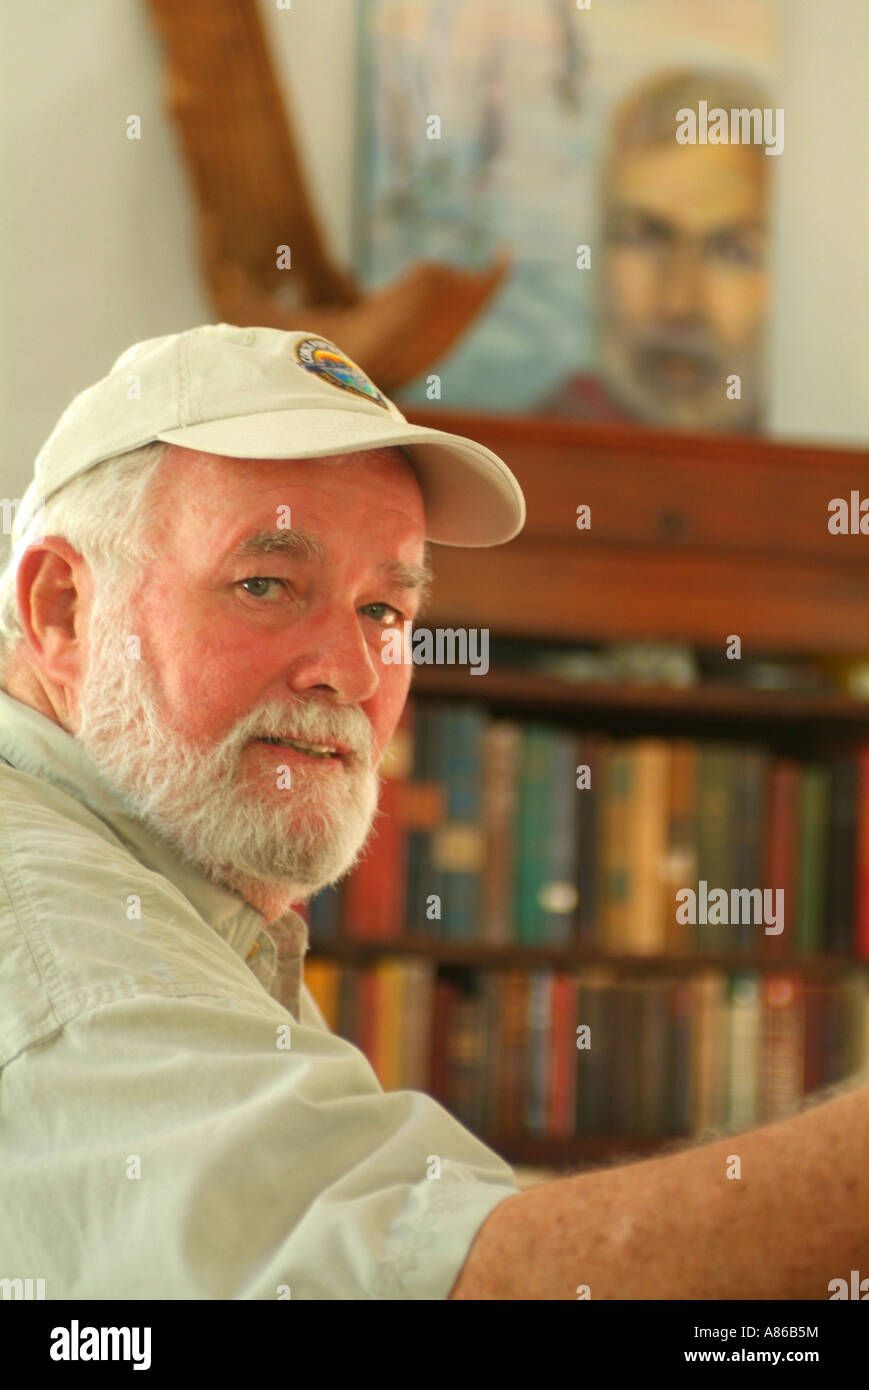 an-ernest-hemingway-look-alike-poses-ins